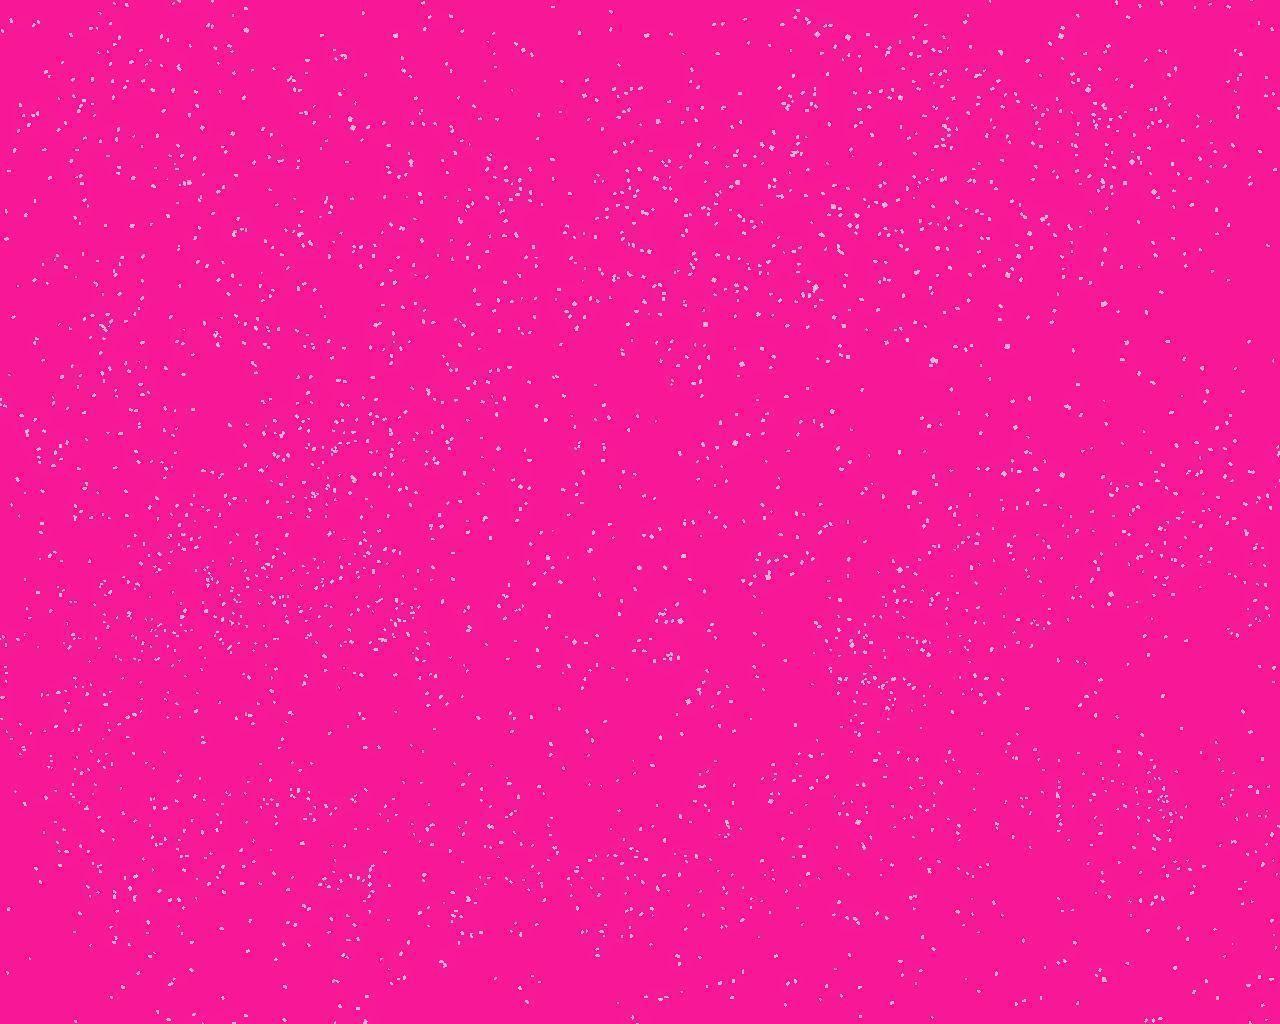 hp wallpaper pink - photo #31